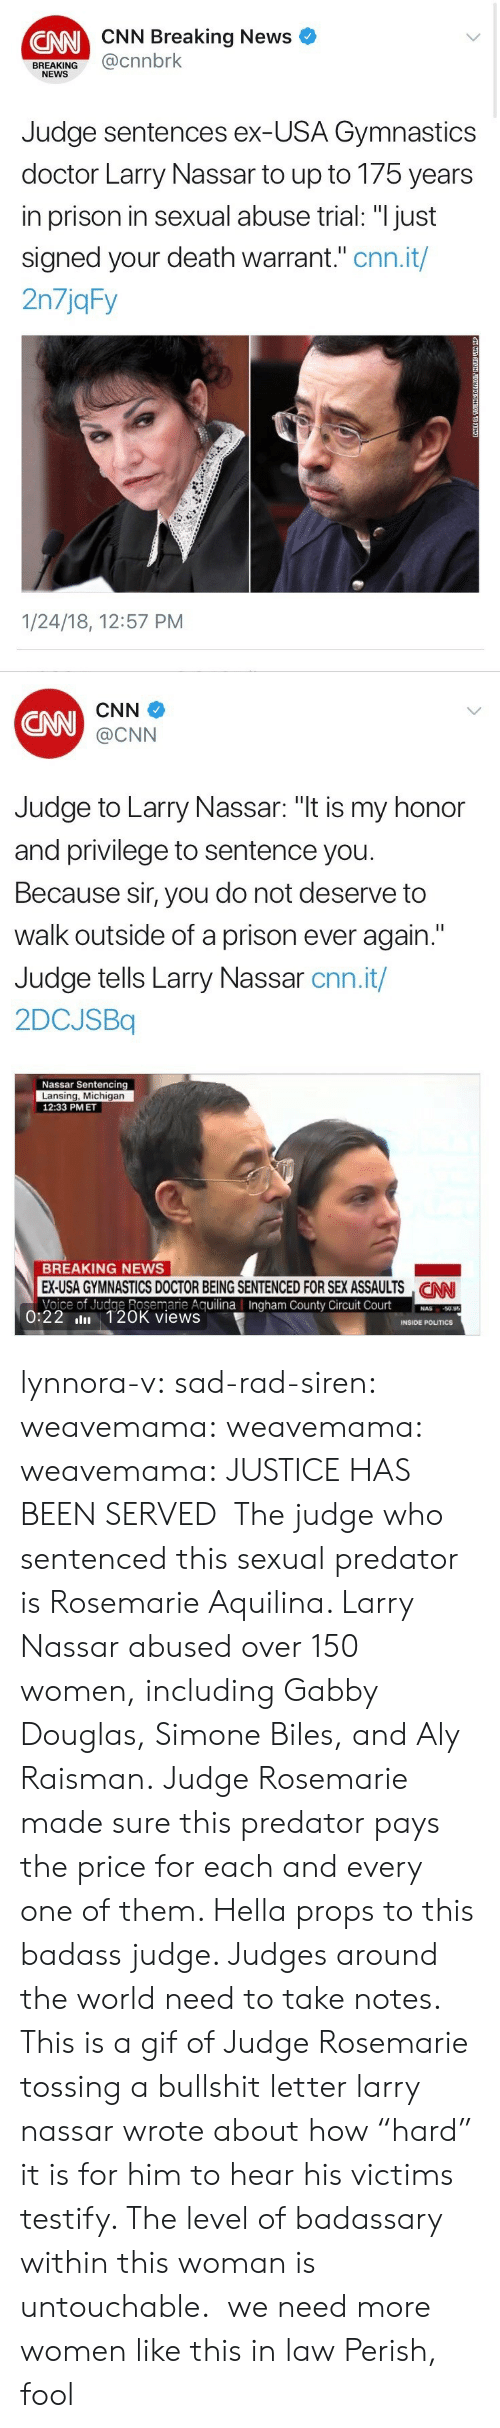 "Sentences: CNN Breaking News  CNN  BREAKING@cnnbrk  NEWS  Judge sentences ex-USA Gymnastics  doctor Larry Nassar to up to 175 years  in prison in sexual abuse trial: ""I just  signed your death warrant."" cnn.it/  2n7jqFy  1/24/18, 12:57 PM   CNN  CNN  @CNN  Judge to Larry Nassar: ""t is my honor  and privilege to sentence you  Because sir, you do not deserve to  walk outside of a prison ever again.""  Judge tells Larry Nassar cnn.it/  2DCJSBq  Nassar Sentencing  Lansing, Michigan  12:33 PMET  BREAKING NEWS  EX-USA GYMNASTICS DOCTOR BEING SENTENCED FOR SEX ASSAULTS NN  Voice of Judge Rosemarie AguilinaIngham County Circuit Court0  CAN  County  50.95  0:22 